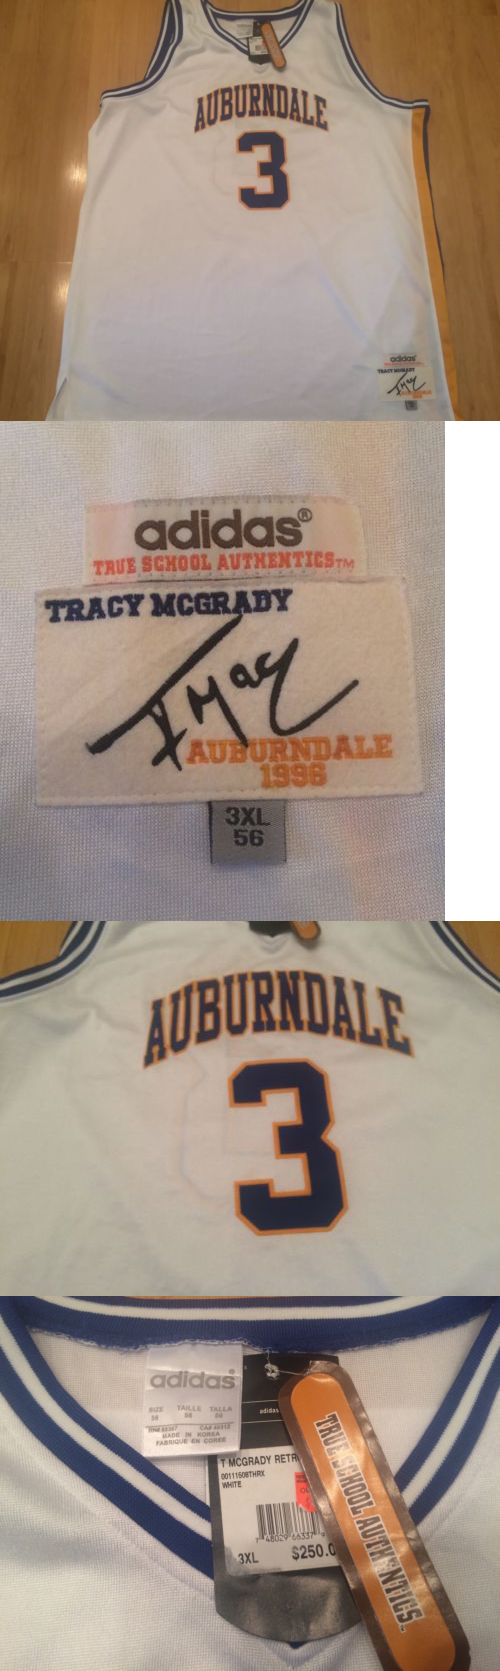 a78a7f98d Basketball-Other 205  Nwt Adidas True School Tracy Mcgrady Auburndale High  School Sewn Jersey